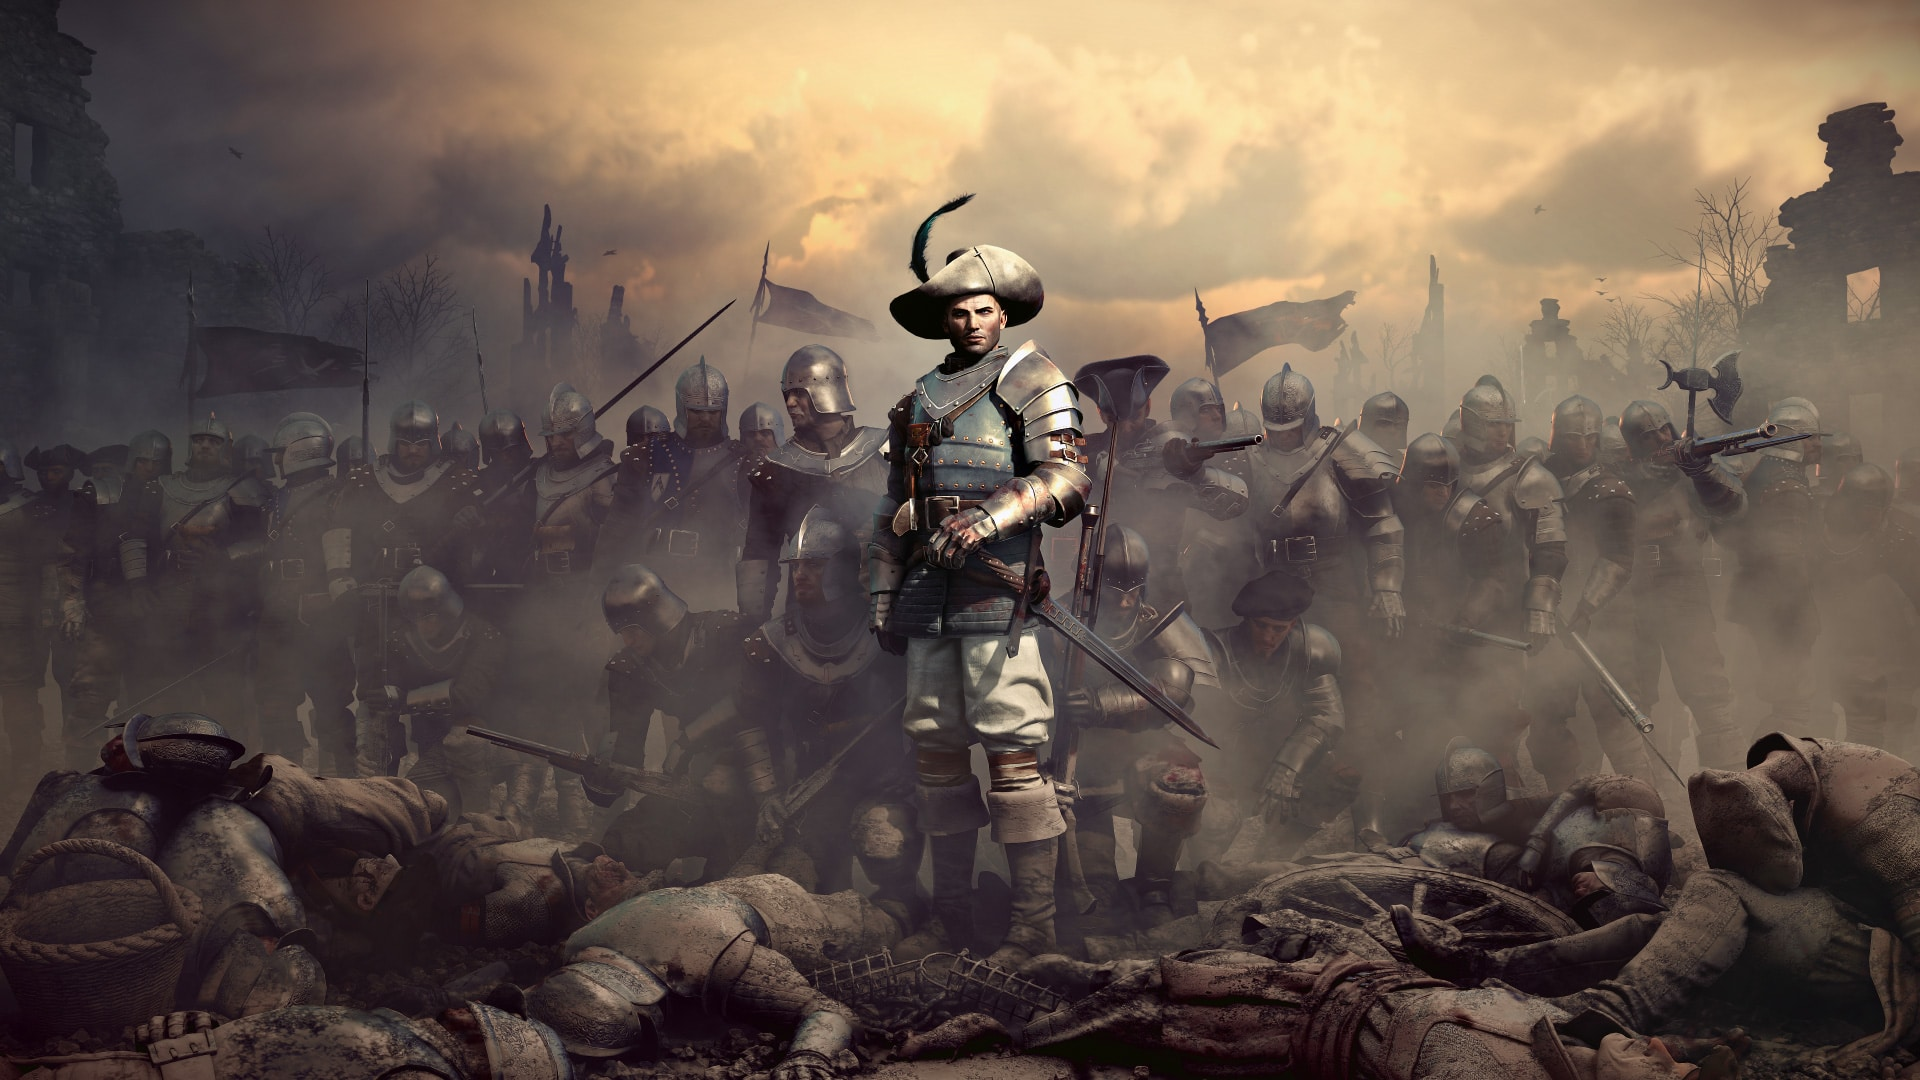 GreedFall: The De Vespe Conspiracy expansion from Spiders needs to address colonialism, conquering and stealing land